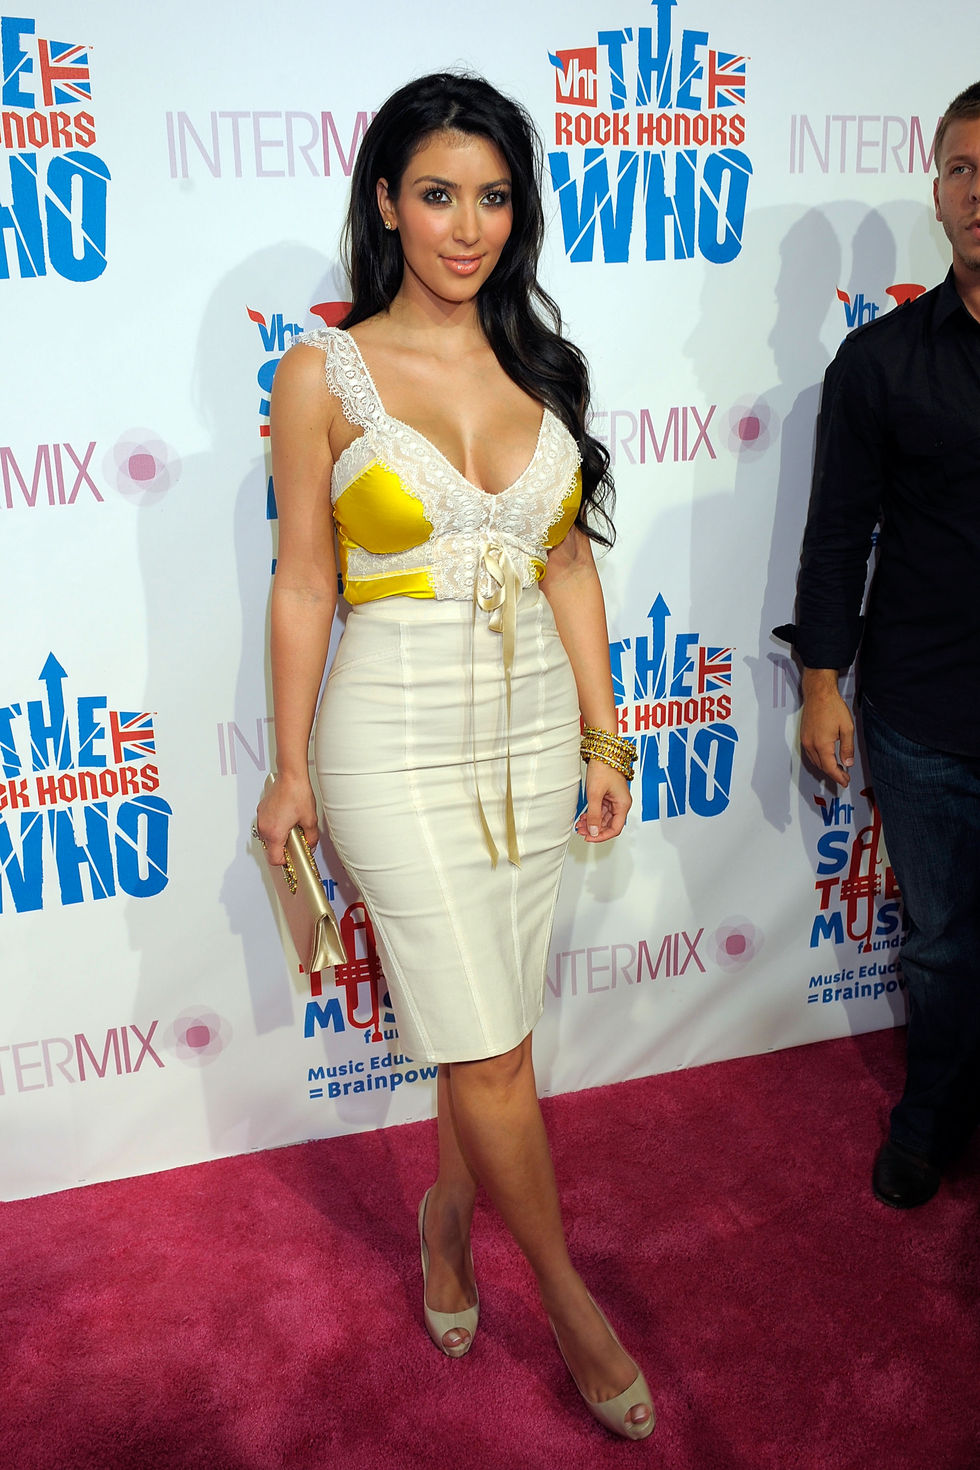 kim-kardashian-intermixvh1-rock-honors-vip-party-in-los-angeles-01